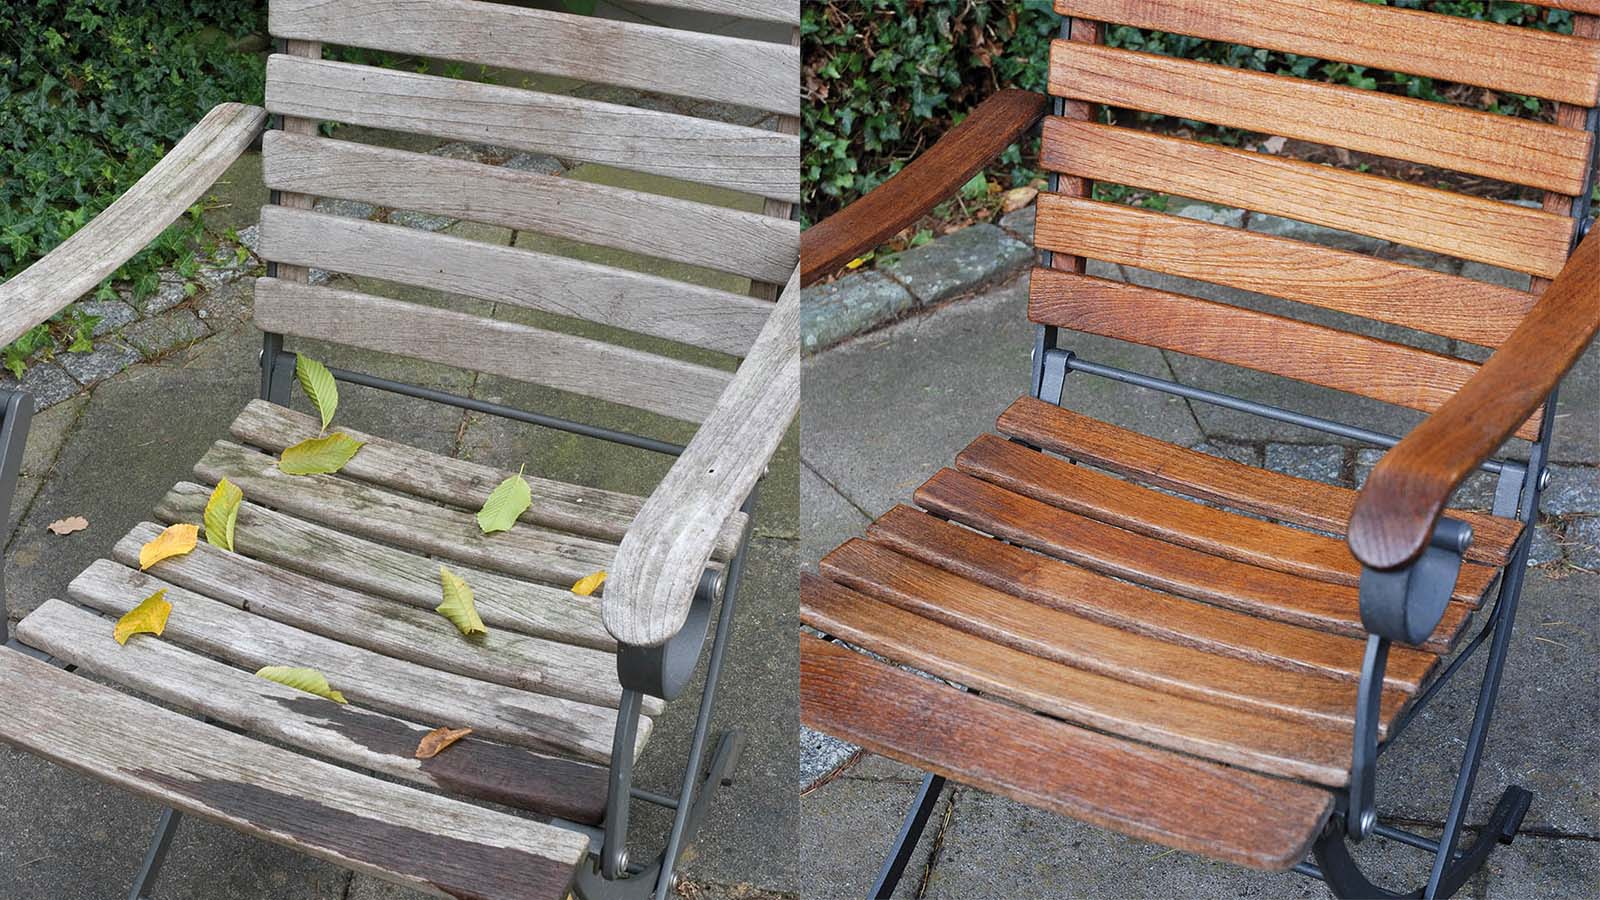 Renovate Wooden Garden Furniture With The Osmo Garden Maintenance Kit Osmo Uk